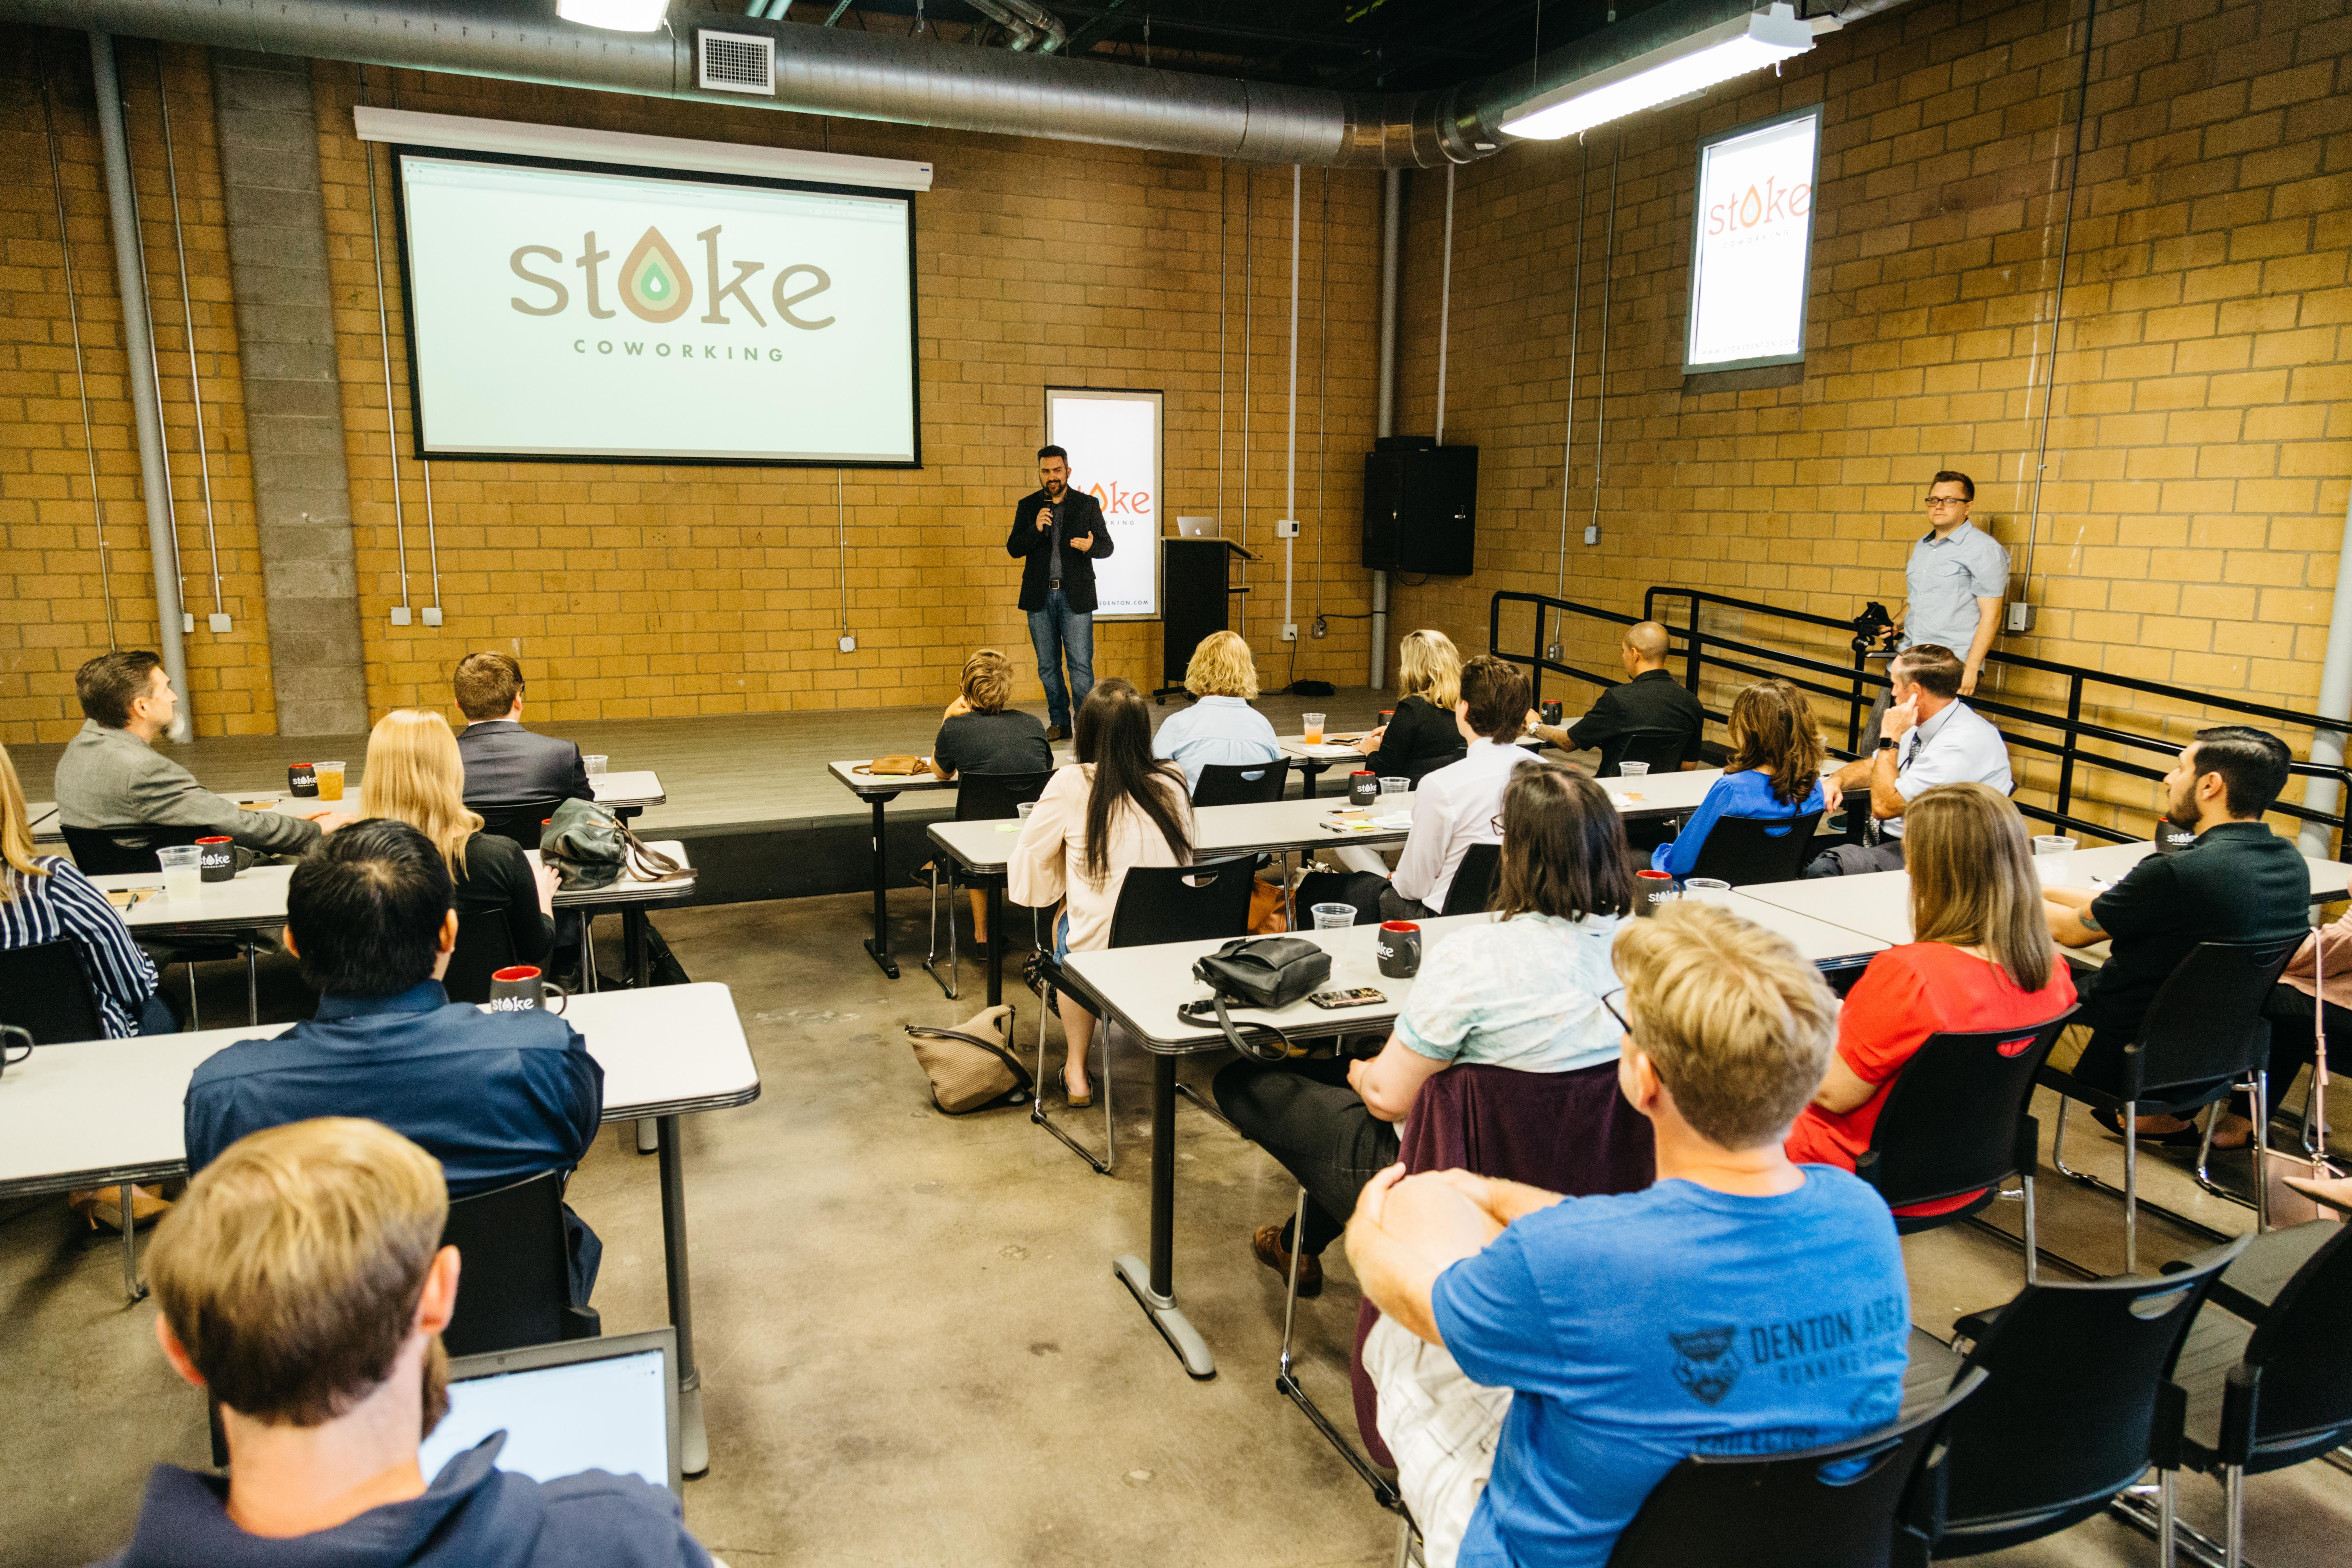 Stoke Coworking and Entrepreneur Center - Event Space